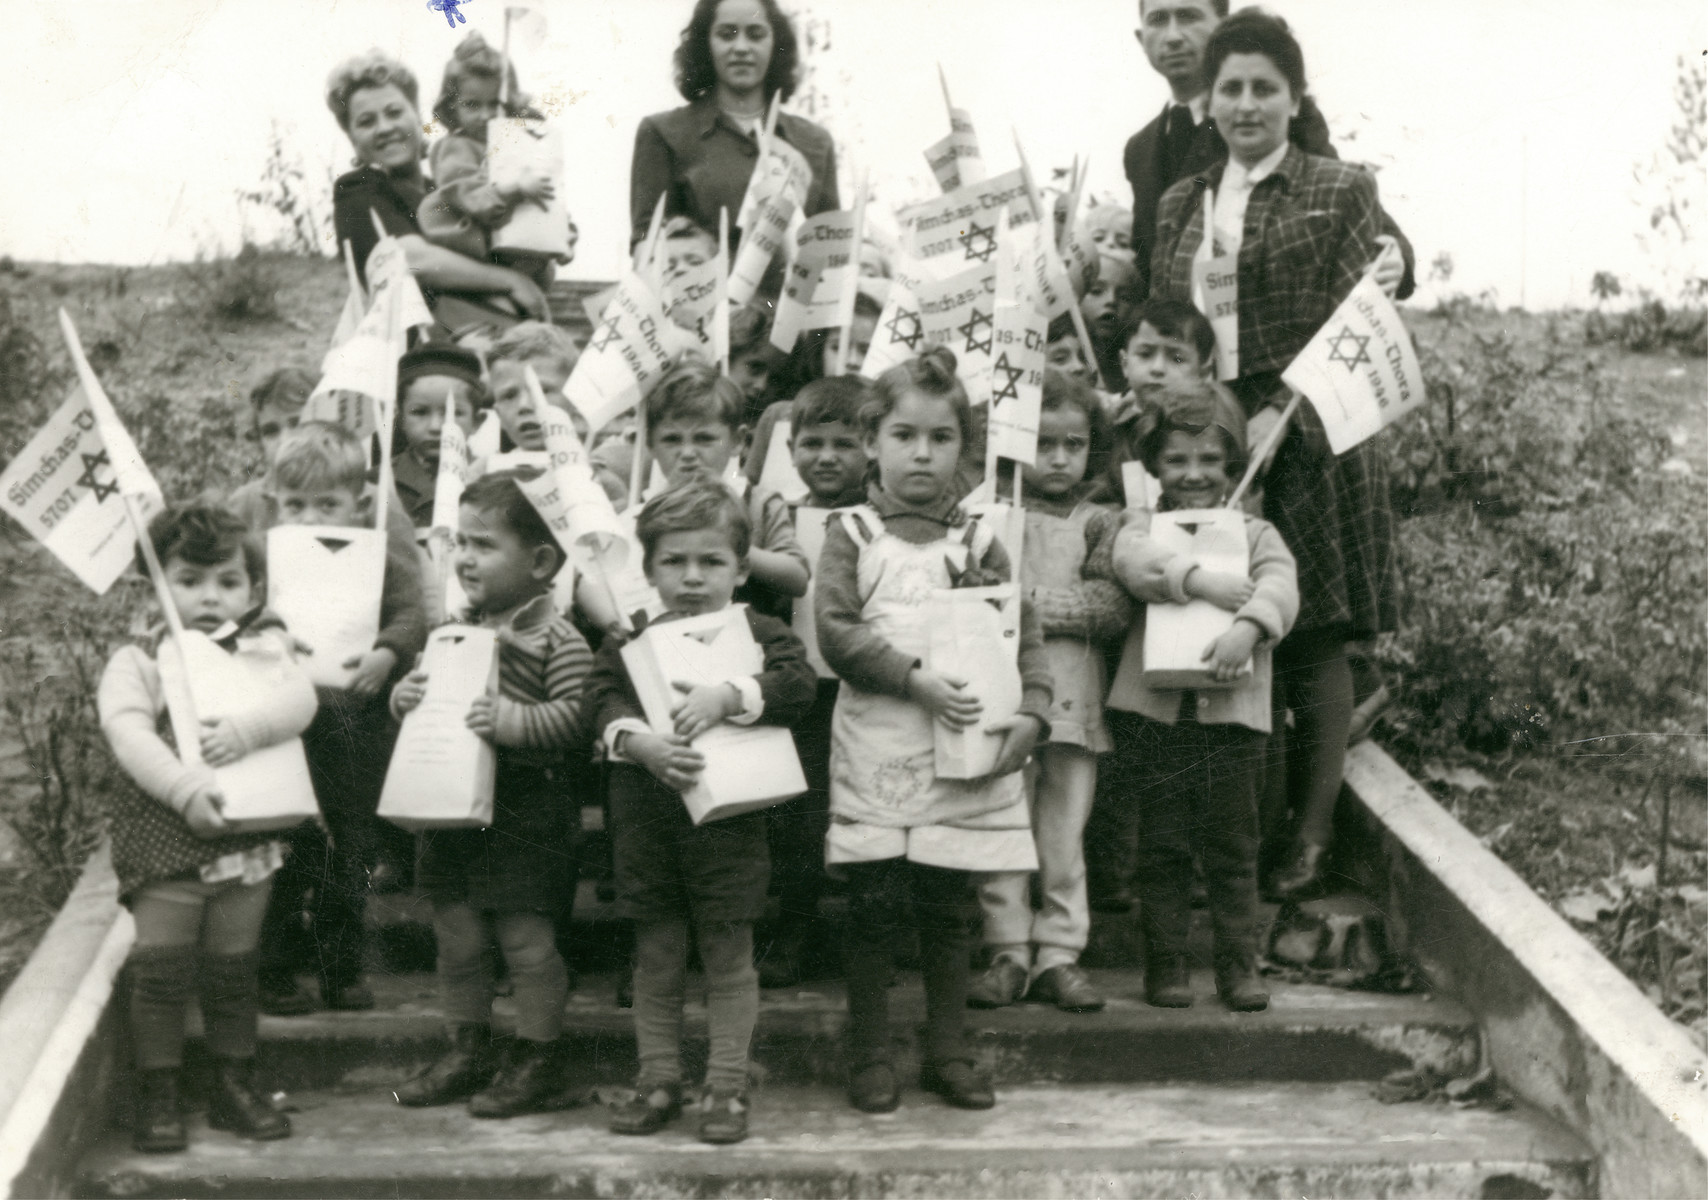 Young children carry small bags and flags during a Simchat Torah celebration in the Schlachtensee displaced persons camp.  Clara is the little girl being held by the woman on the far left, back row.